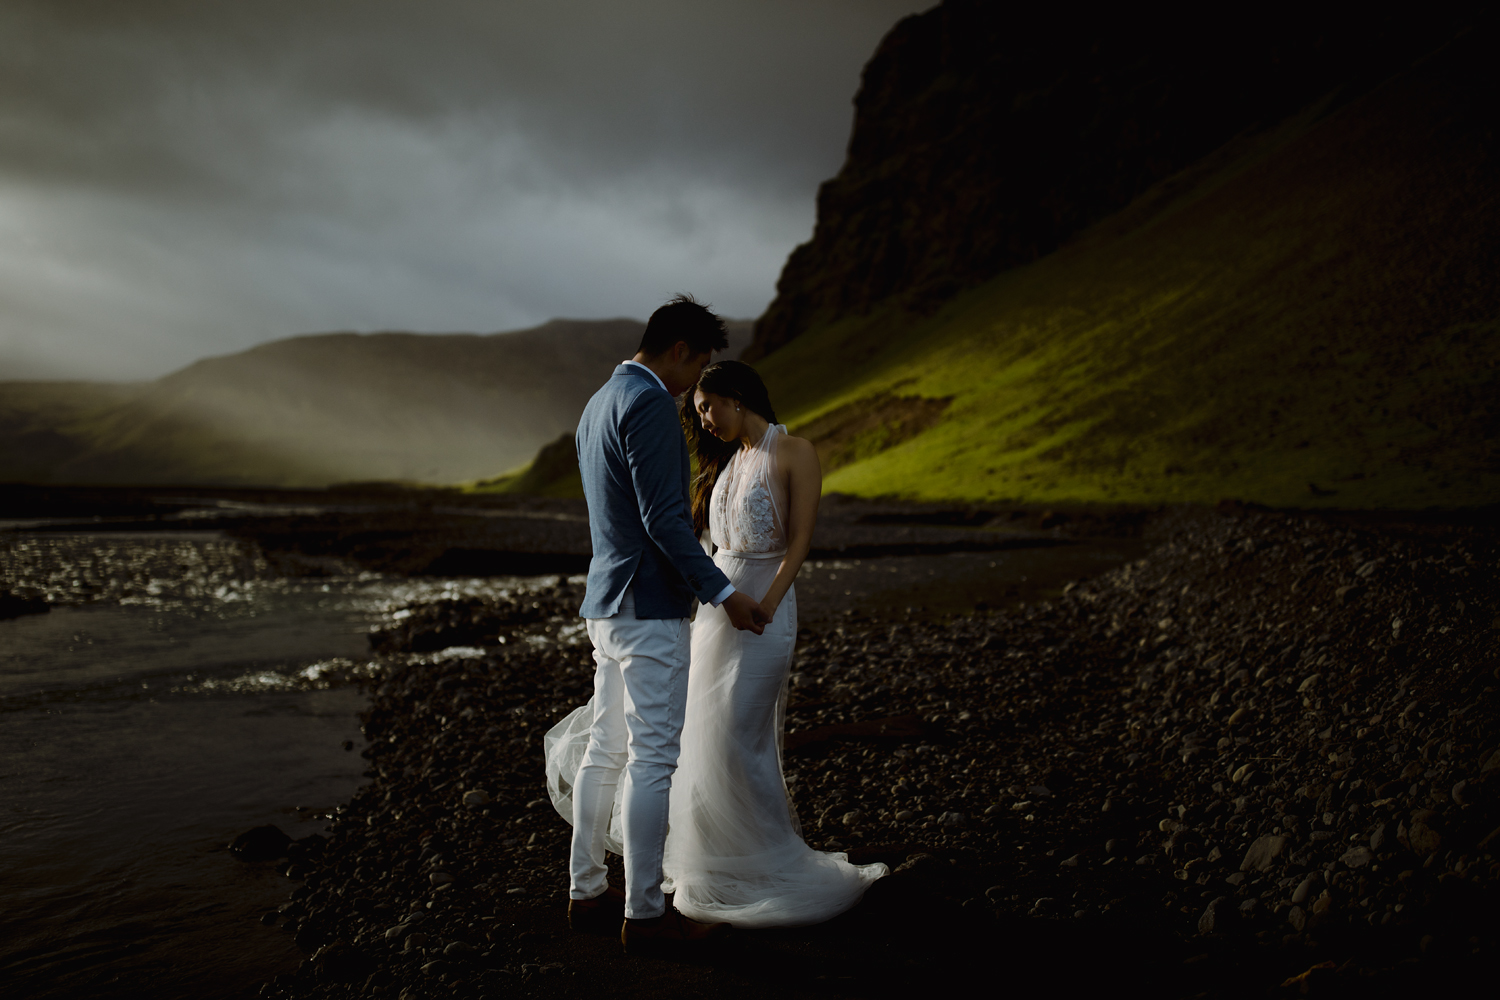 Iceland wedding photographer, Iceland wedding, Iceland photographer, Iceland elopement, Iceland photography, Iceland weddings, destination Iceland, Iceland photographer